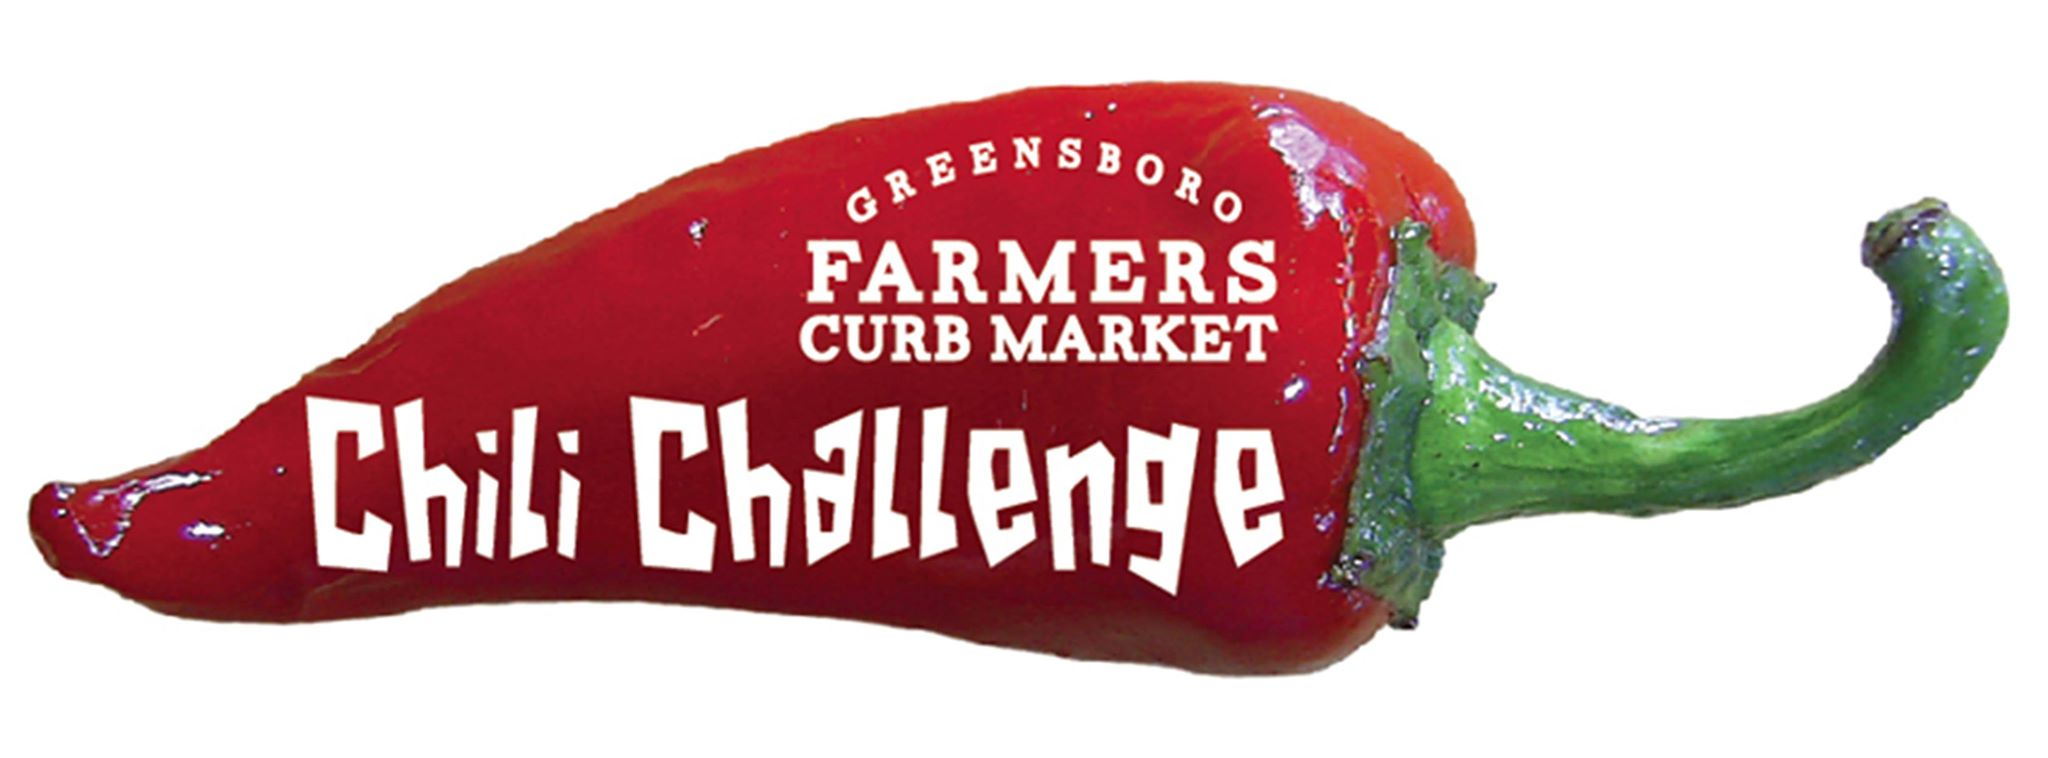 The 6th Annual Chili Challenge: Saturday, January 28th, 9 am-11:30am